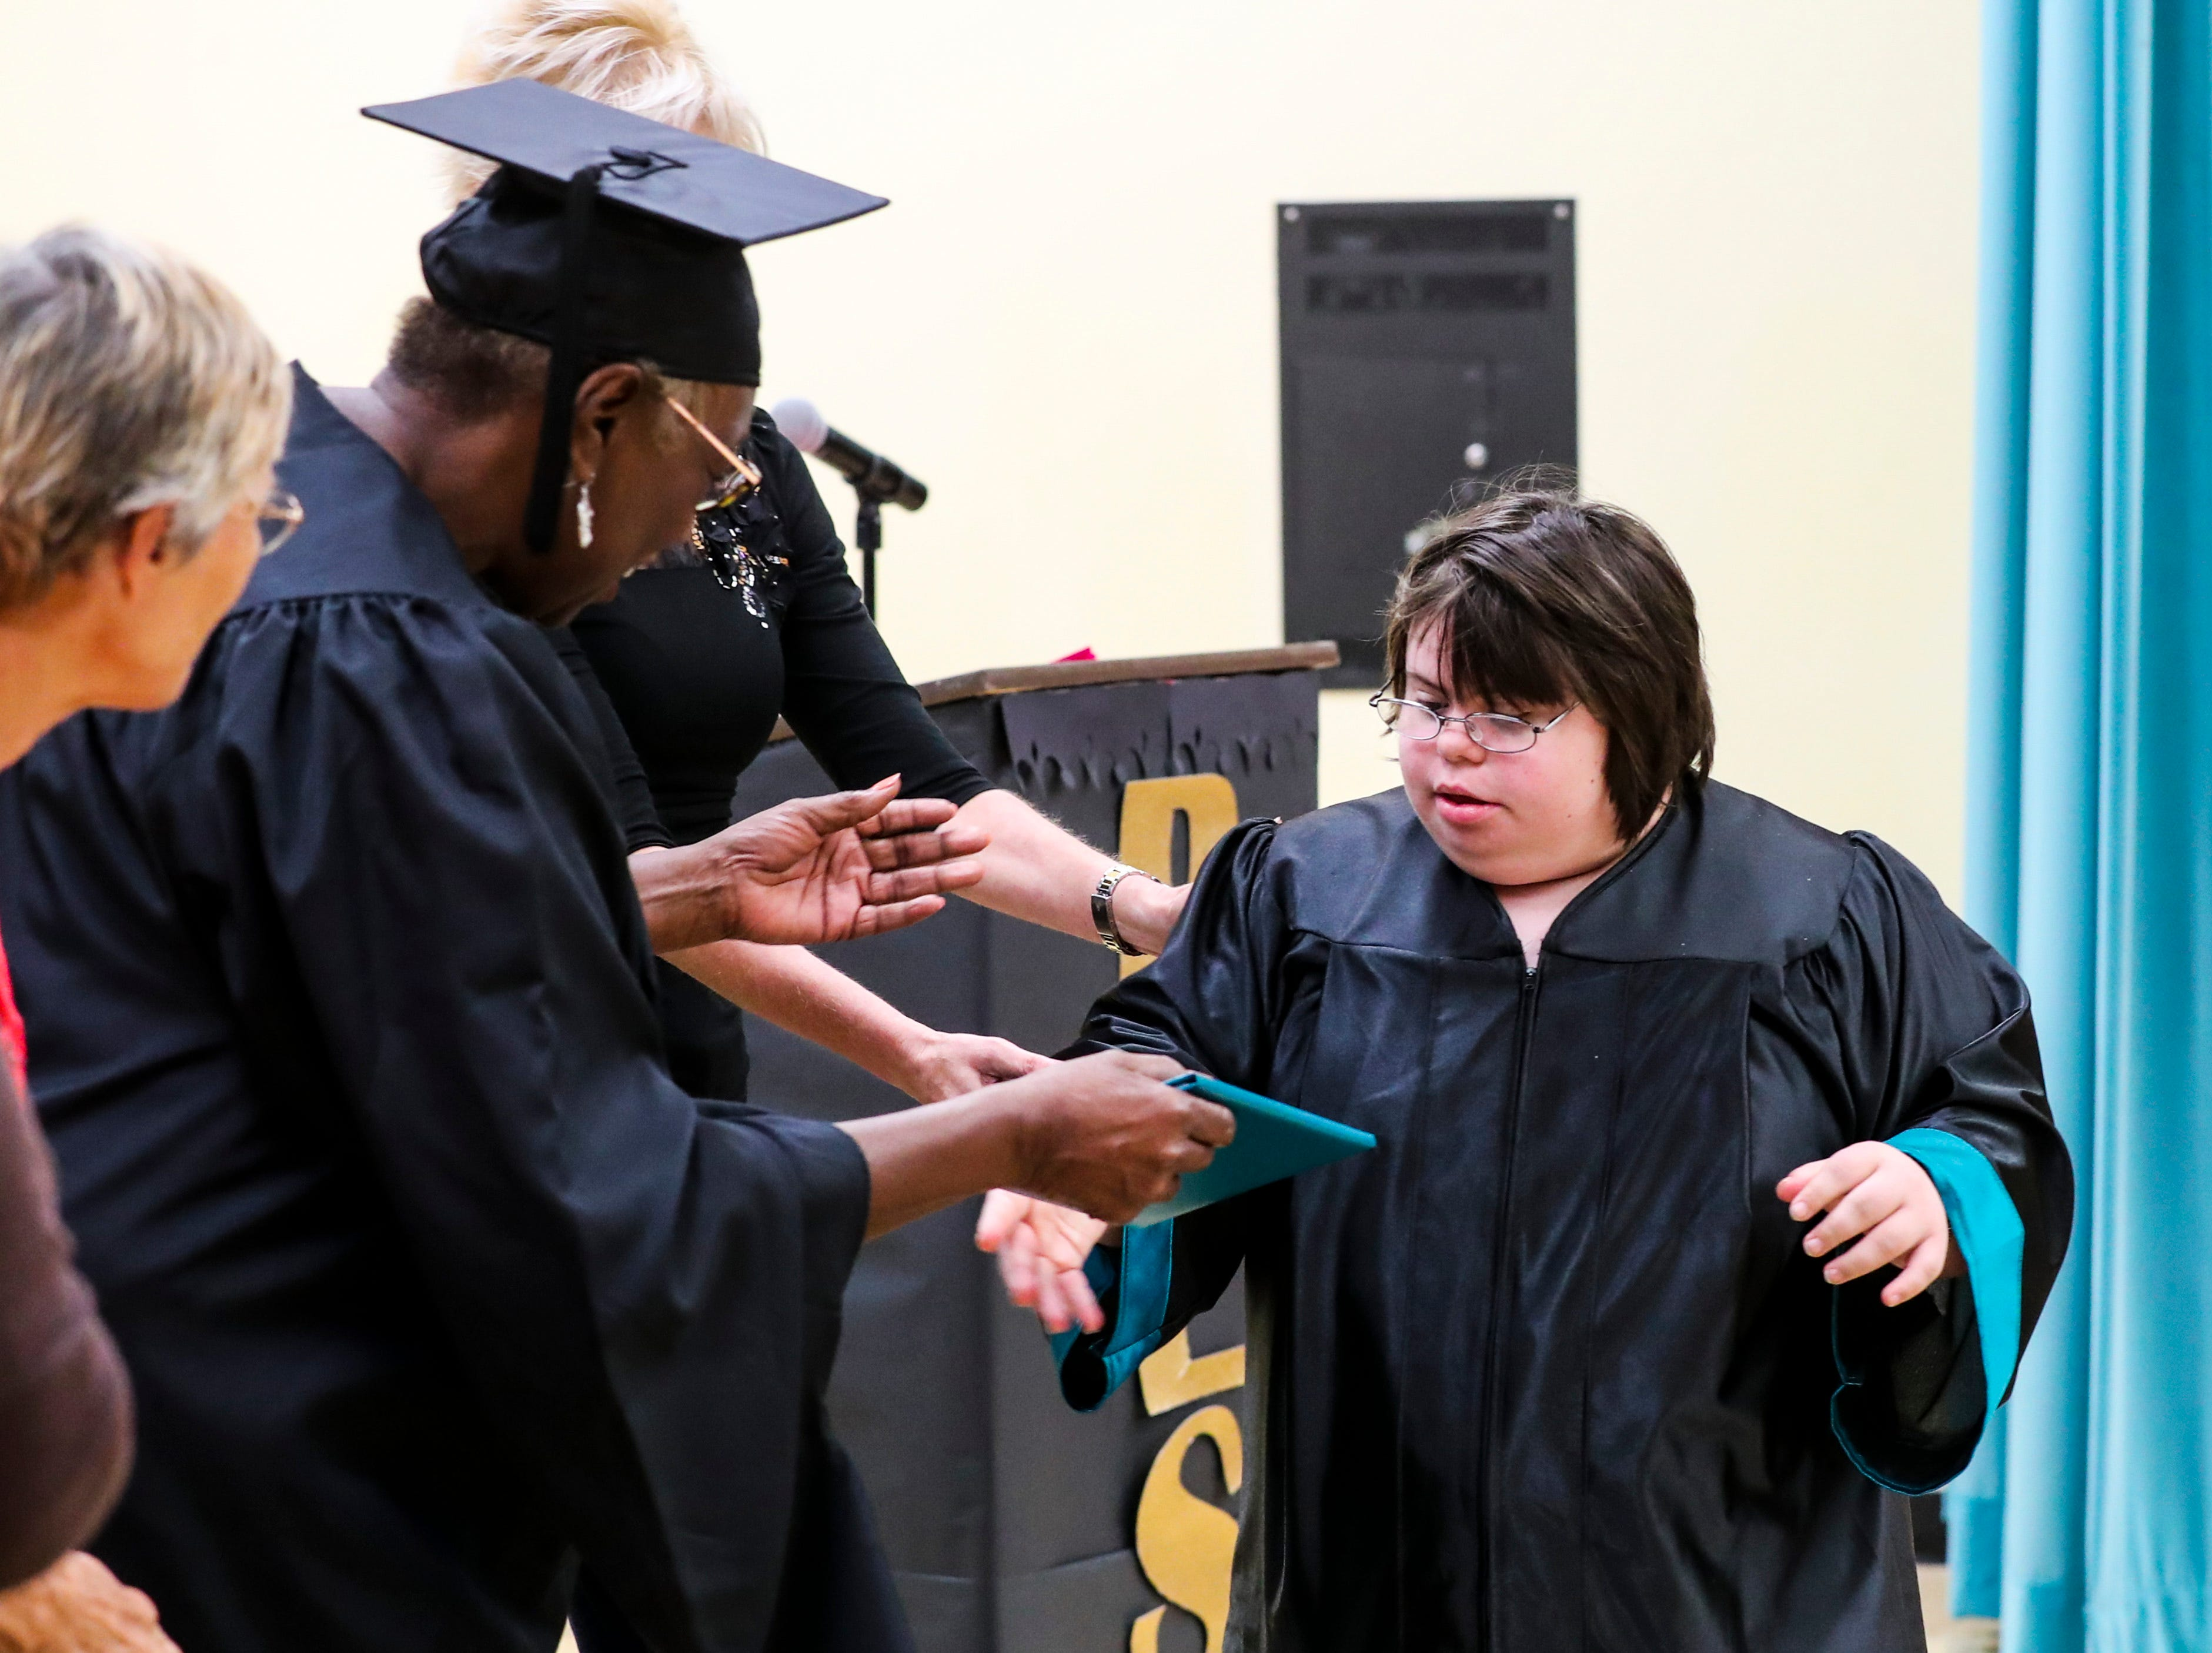 Megan Maruca gets her diploma from Gwynetta Gittens, as she handed out the diplomas to the students. Ruthie Lohmeyer, Principal, looks on.  13 students at Buckingham Exceptional Student Center graduated during a ceremony in their honor. Family, friends, and staff were there to honor the graduates.